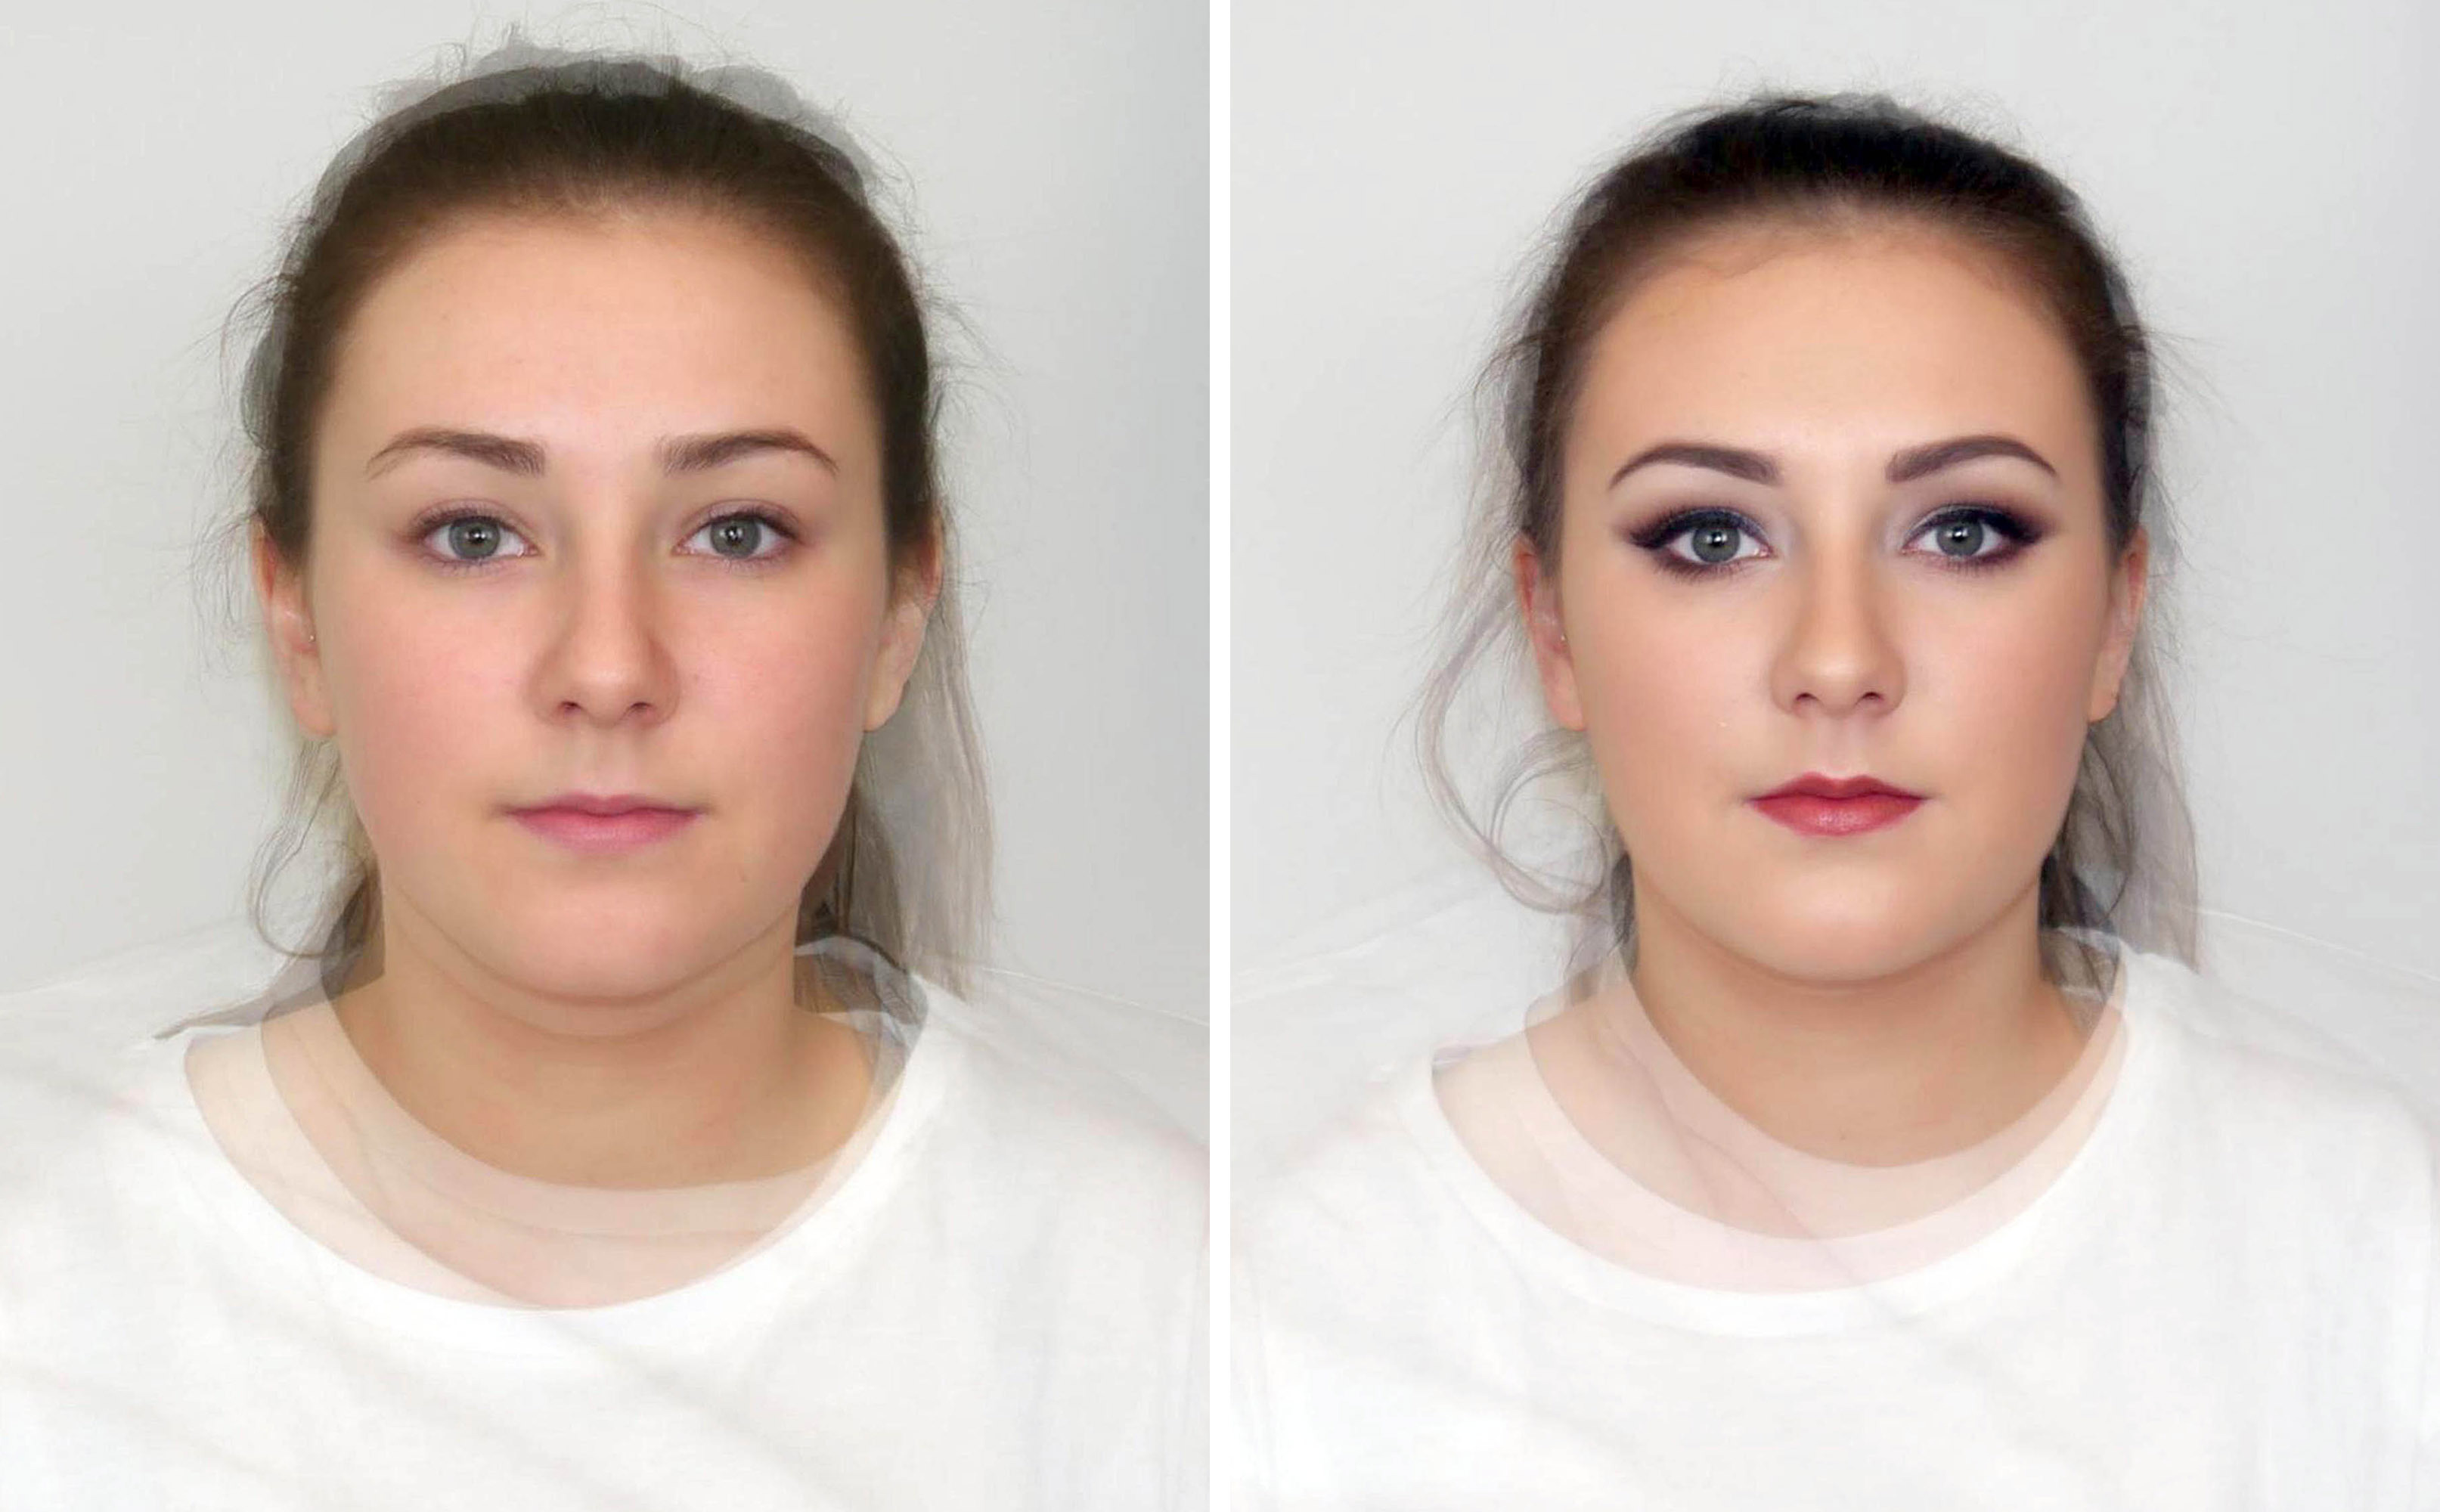 An Abertay University study has found that women wearing make-up for a night-out are less likely to be considered good leaders. (Abertay University/PA Wire)